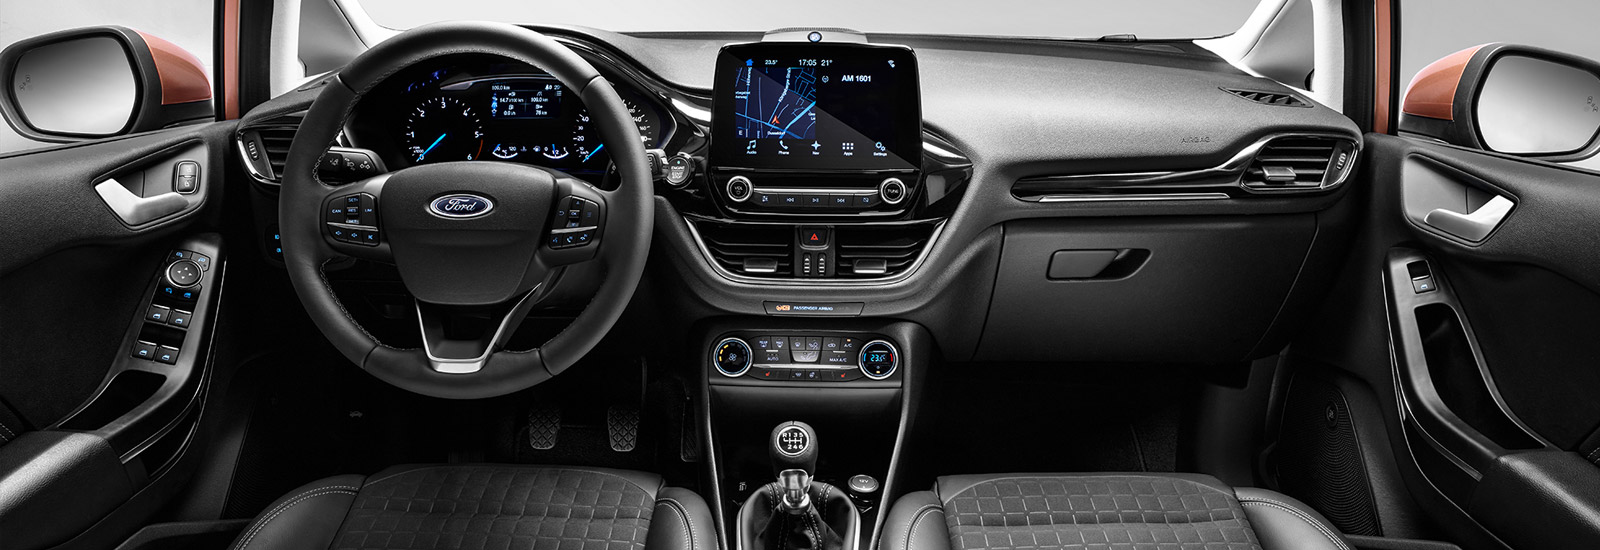 2018 ford uk. exellent ford the new focus stu0027s cabin is expected to look just as modern the  fiestau0027s shown here but far sportier on 2018 ford uk r